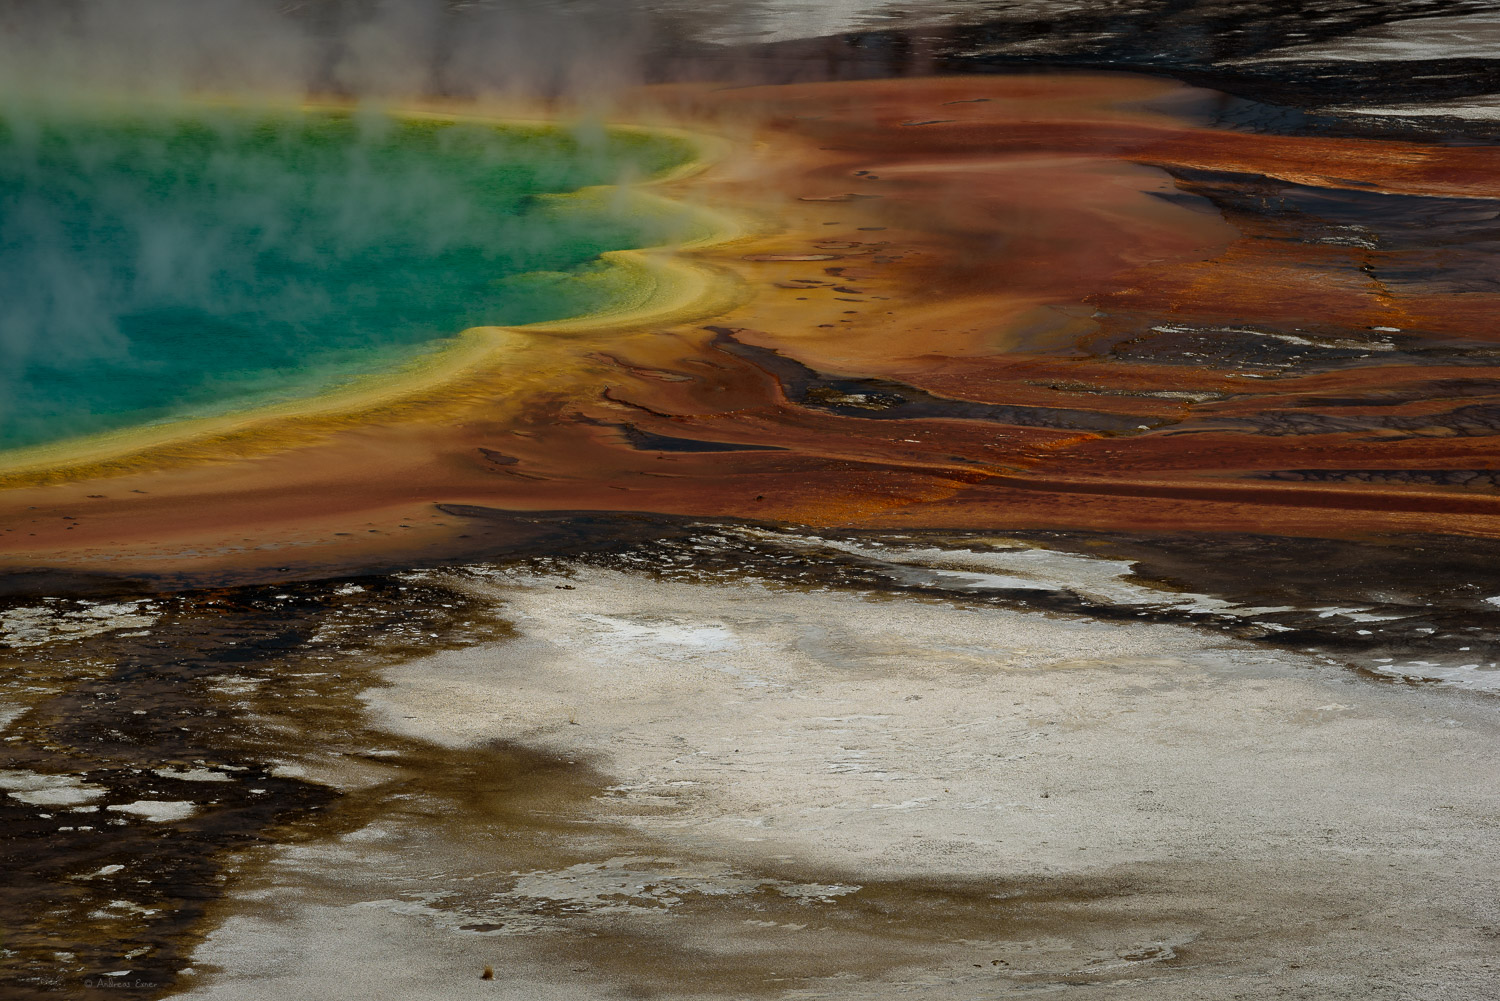 Grand Prismatic Spring, Yellowstone National Park, Wyoming, @ 200 mm